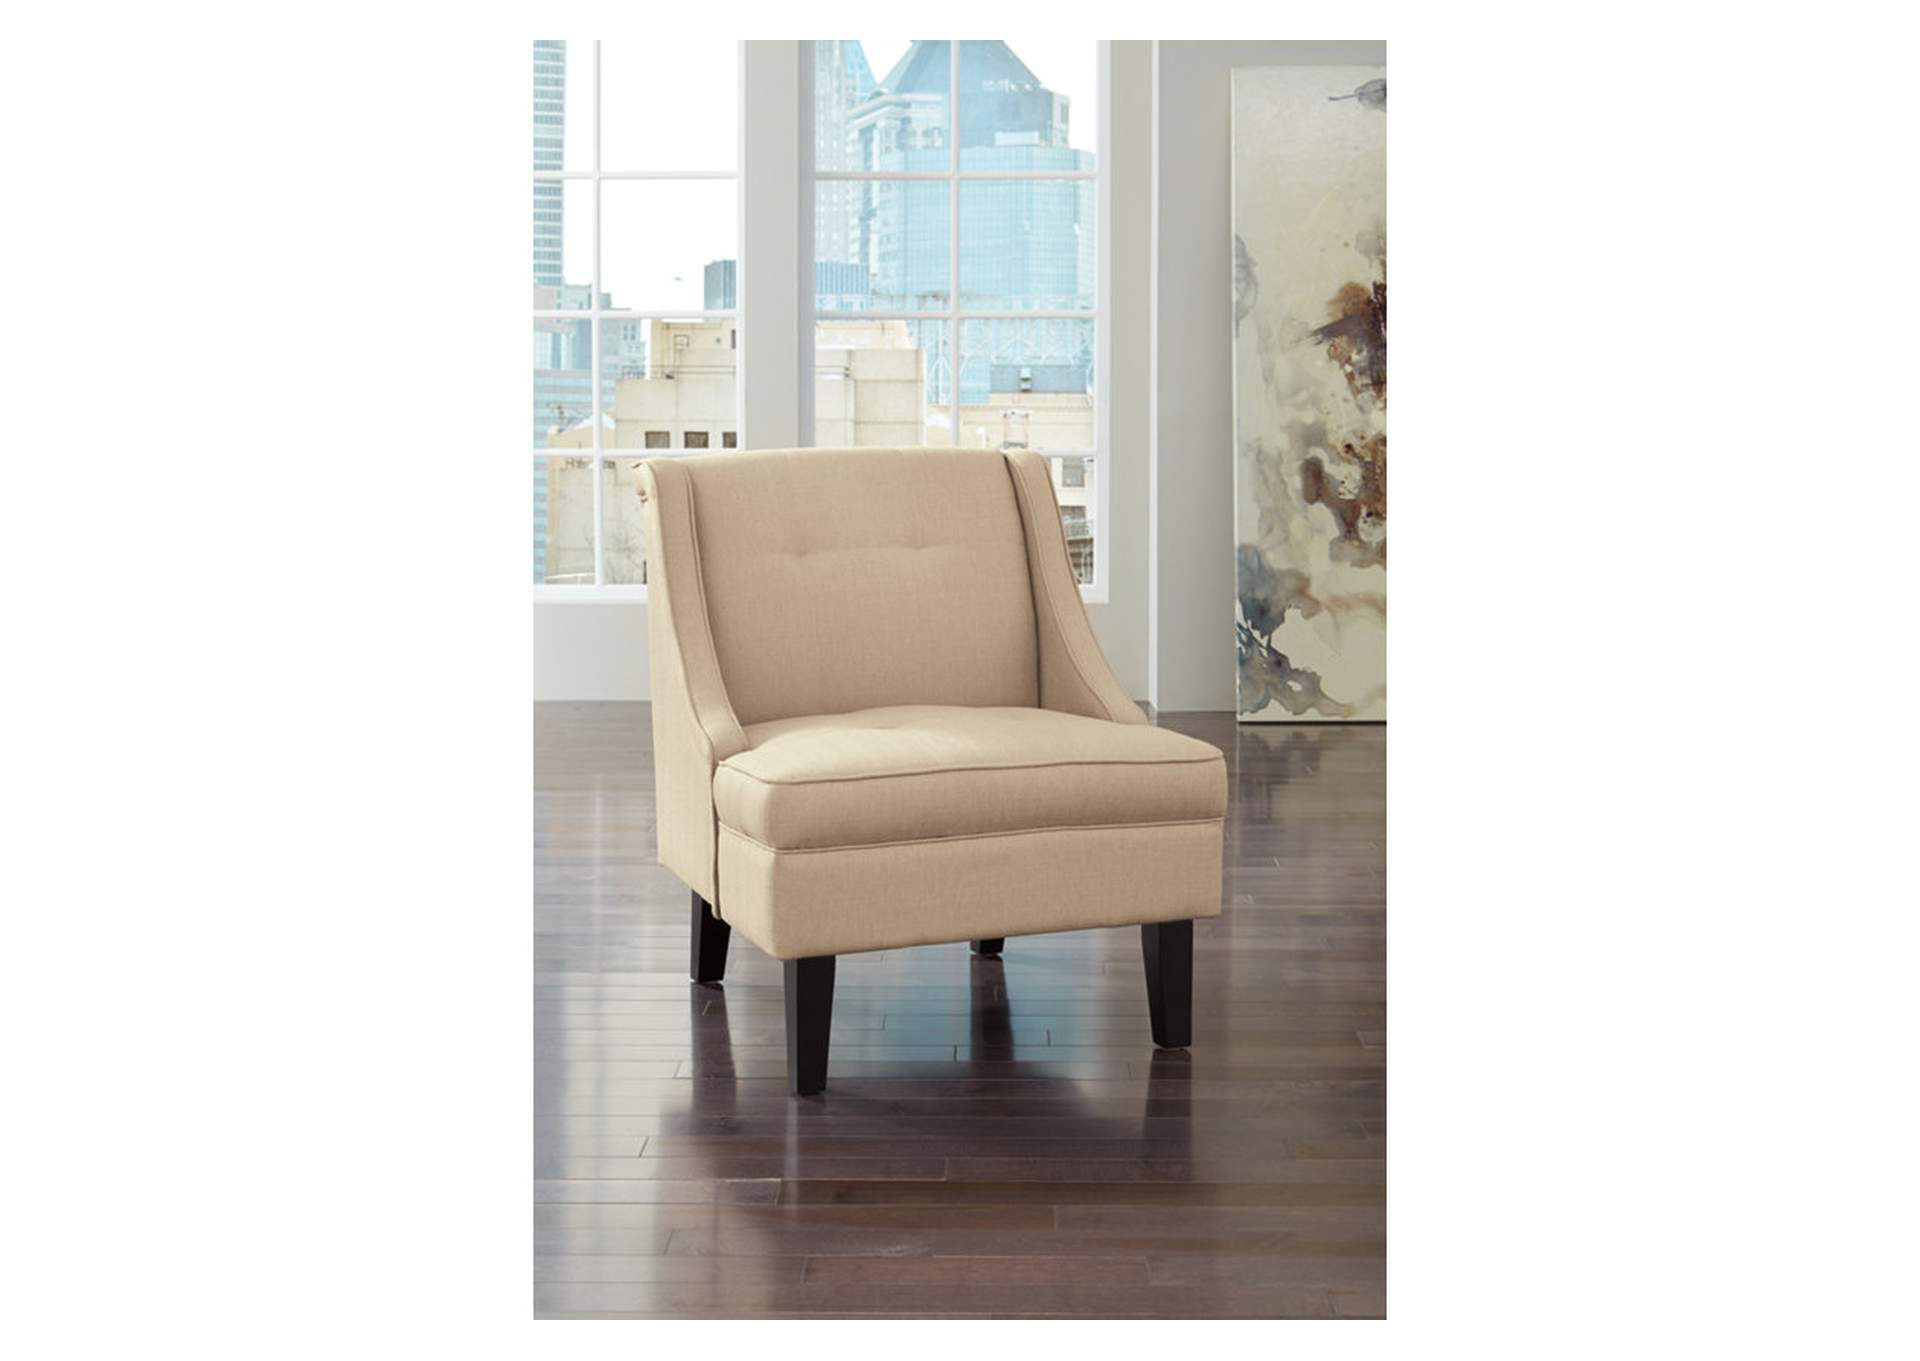 cream accent chair overstock furniture langley park catonsville 13574 | 36230 60